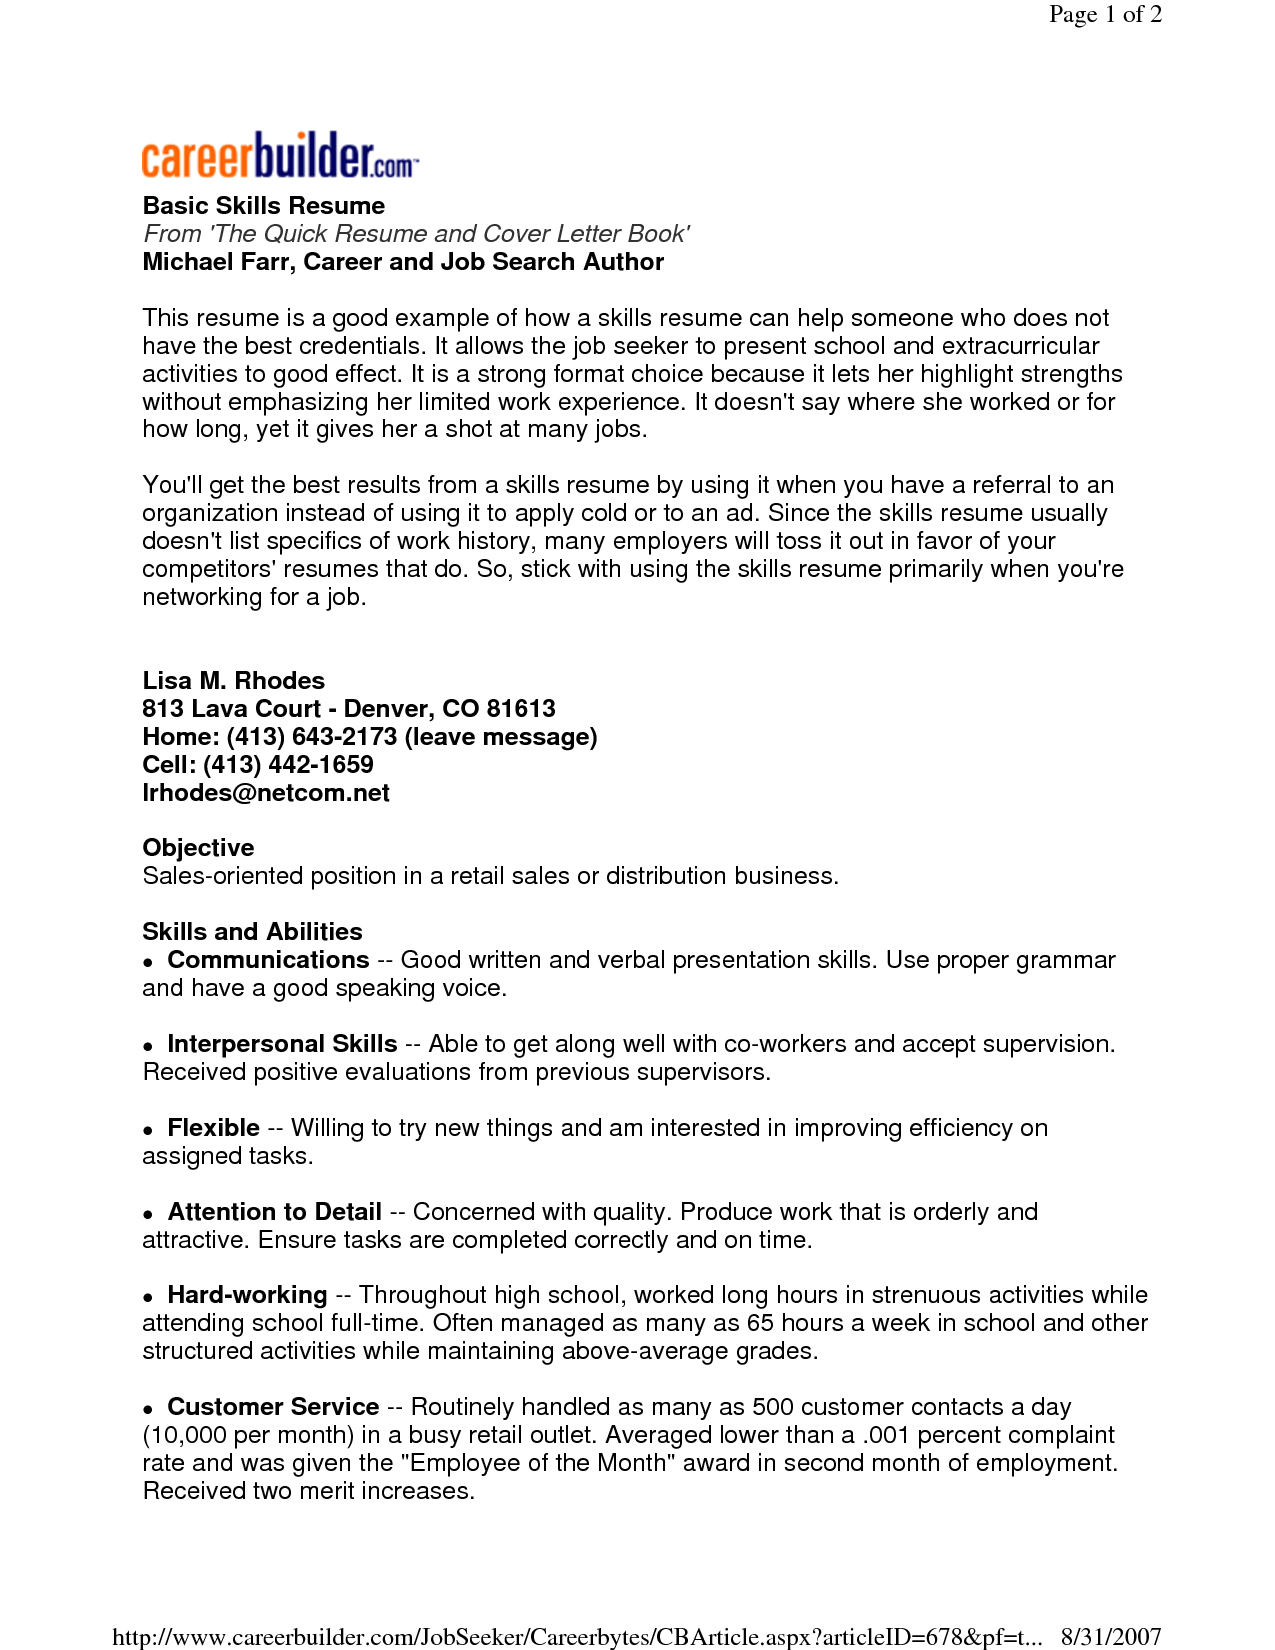 Find Here The Sample Resume That Best Fits Your Profile In Order